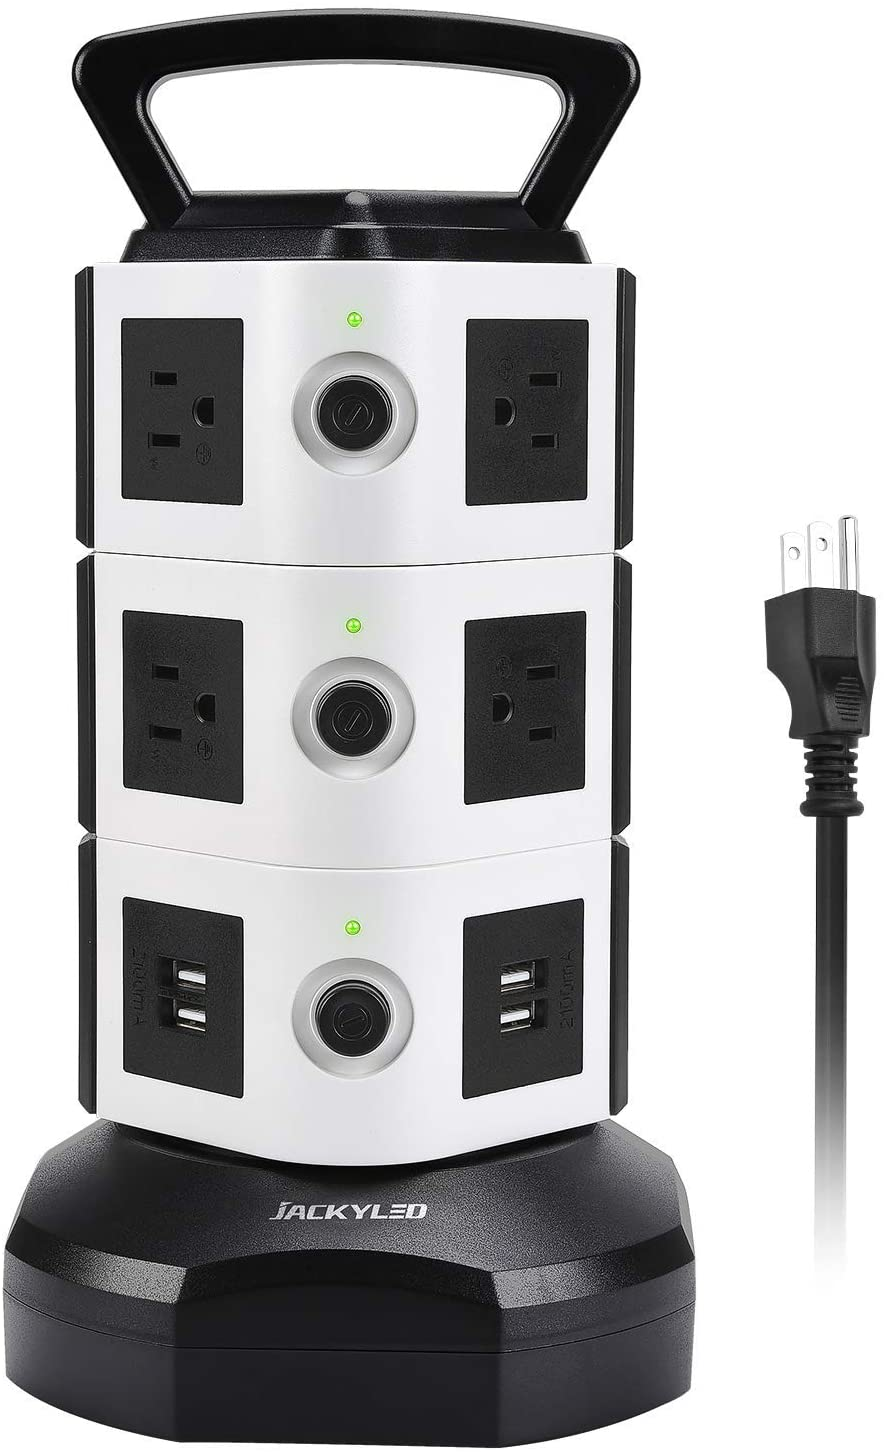 JACKYLED Power Strip Tower, 14-Ports